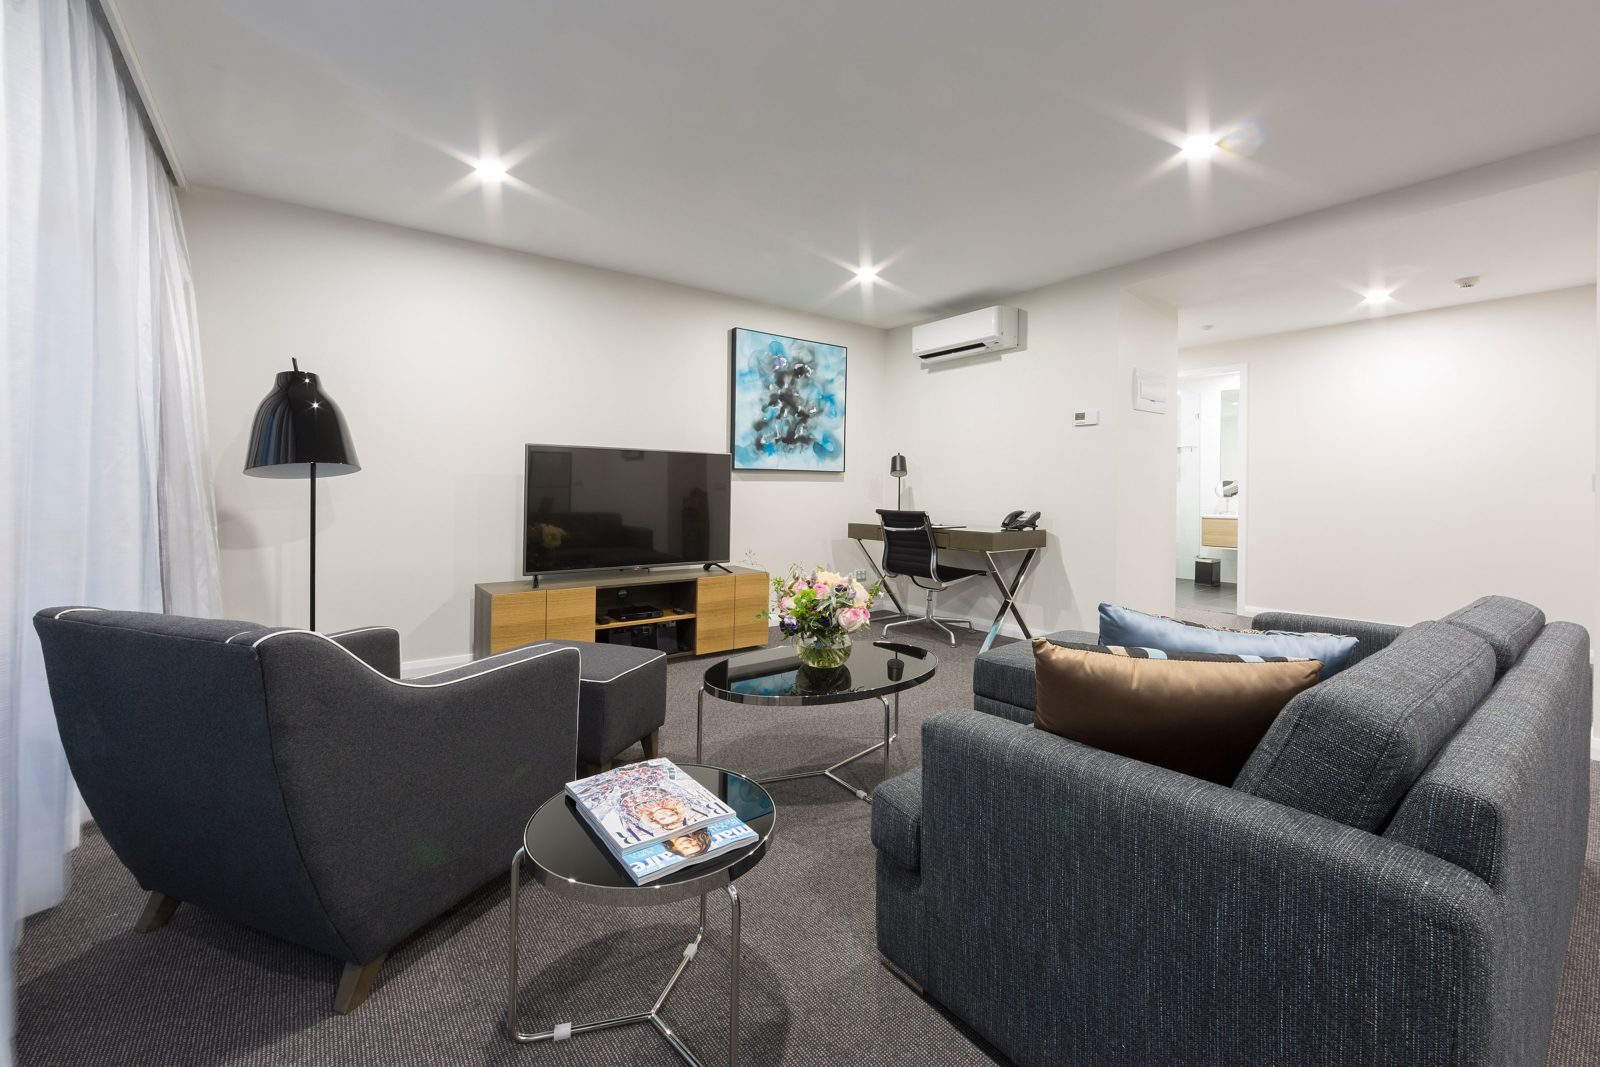 Avenue Hotel Canberra apartment interior